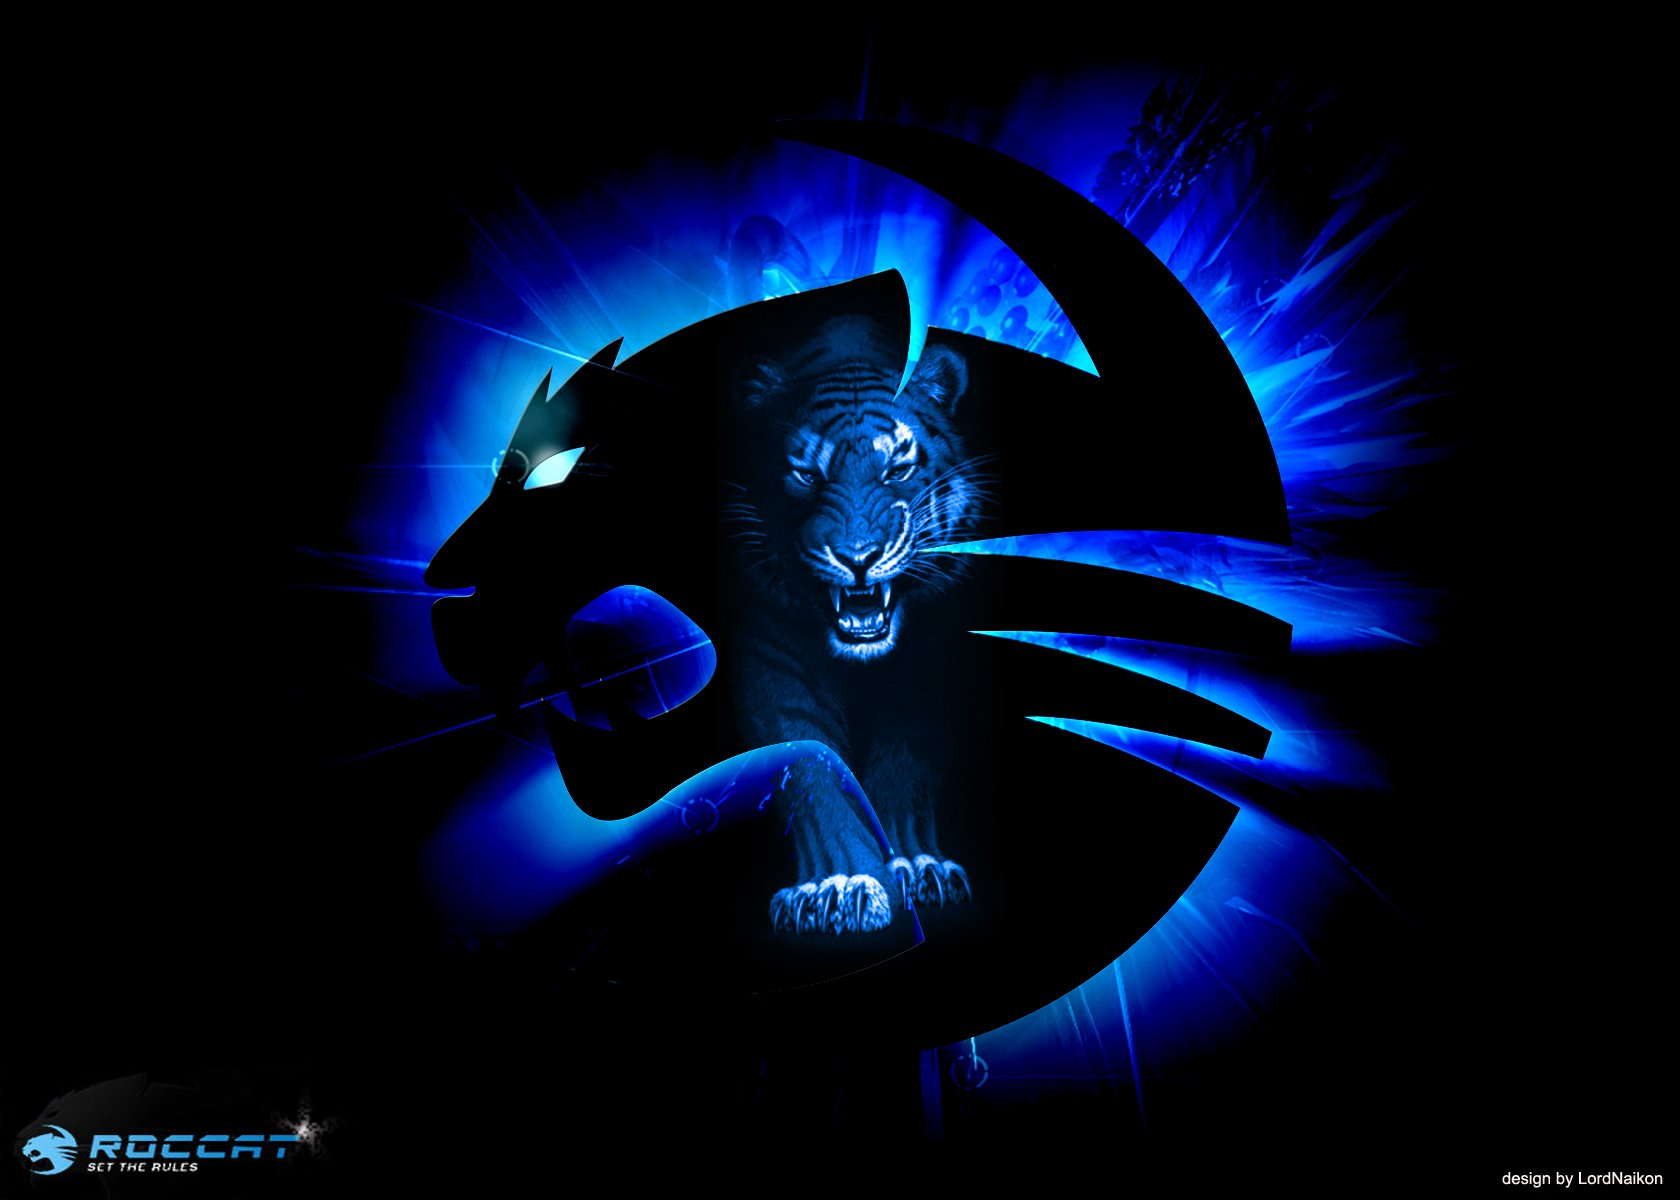 Ls 3d Cartoon Art Wallpaper Roccat Gaming Computer Wallpaper 1680x1200 401587